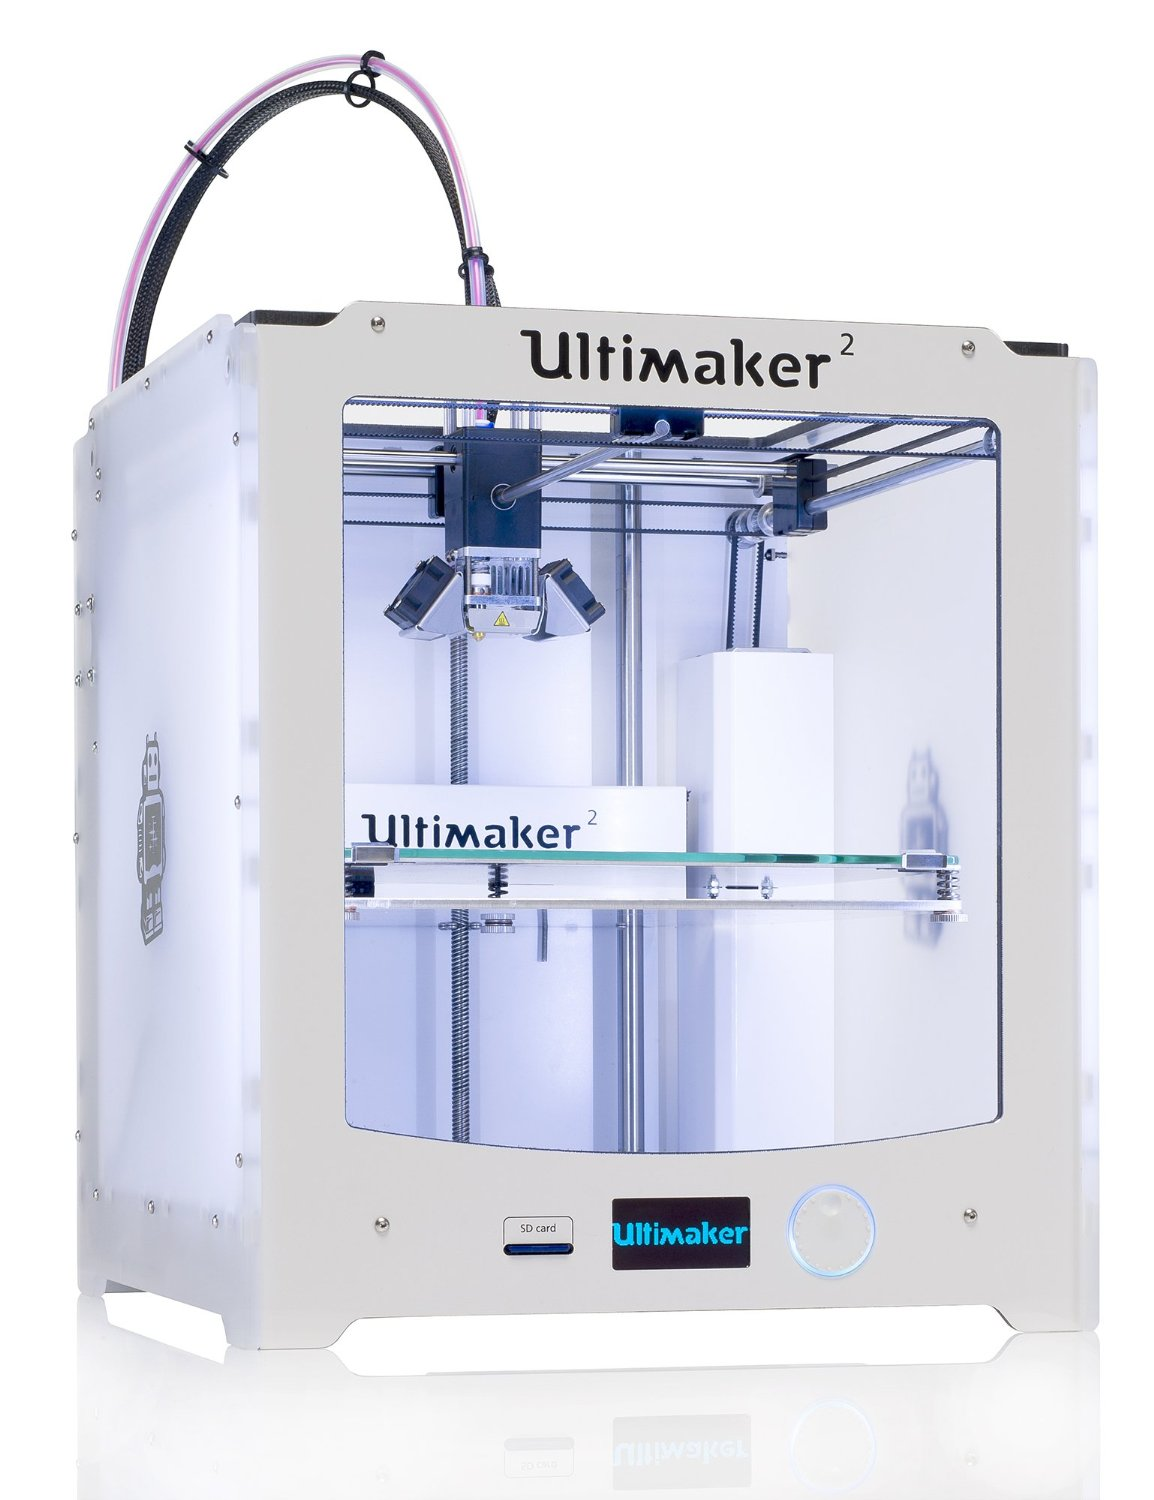 3D printer Review: Ultimaker 2 fast and high precision